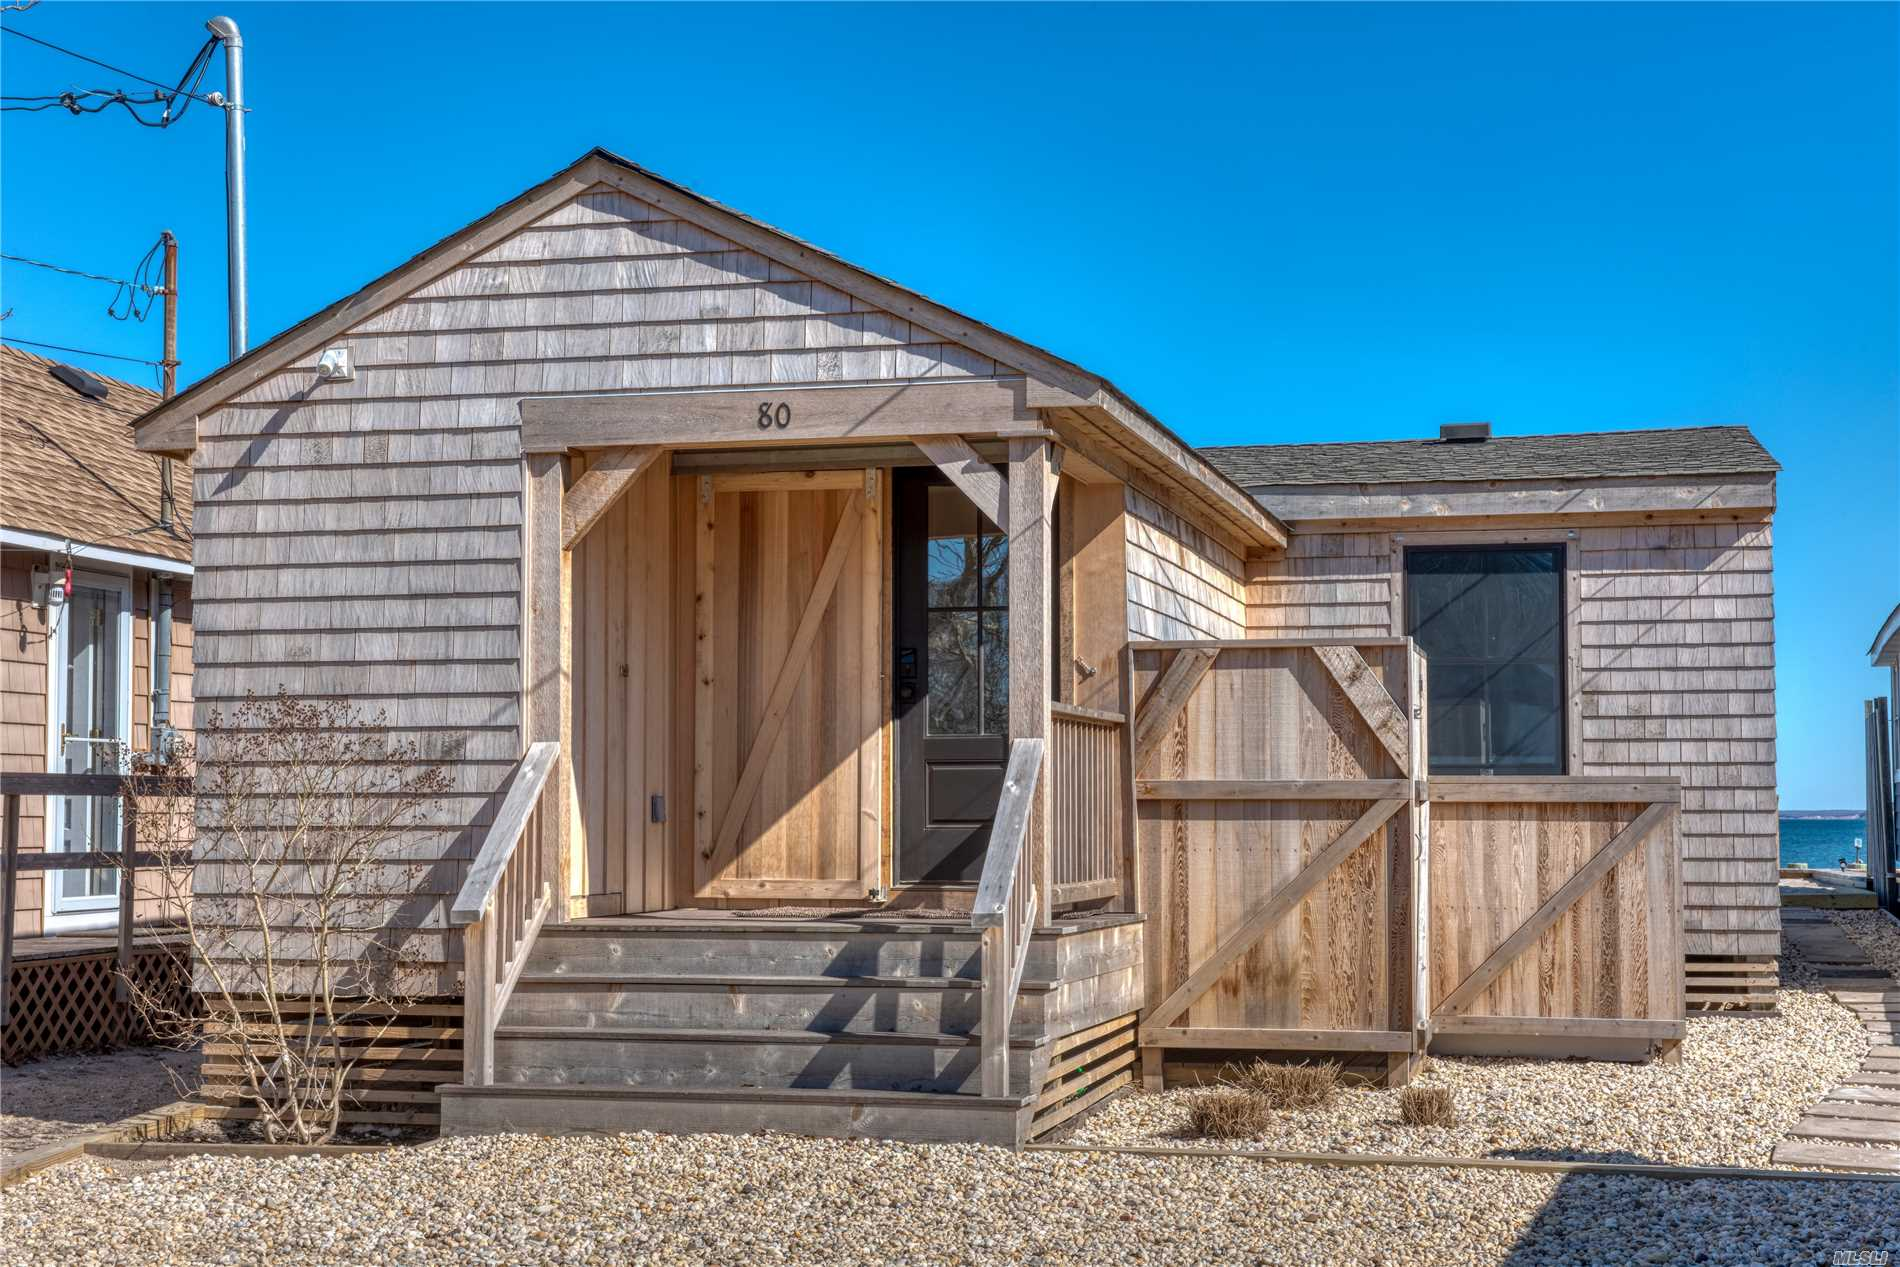 Charming Rebuilt cottage with sweeping views of Peconic Bay. Features include an open floor plan for easy entertaining.. Vaulted ceilings with exposed beams. Custom kitchen. All common areas and master bedroom have water views.Sliding barn doors on all bedroom Windows to guarantee privacy and keep out the light for those lazy mornings. Open the slider and take your coffee out to the seaside deck or put your toes in the soft sand. A minute away Greenport restaurants abound.